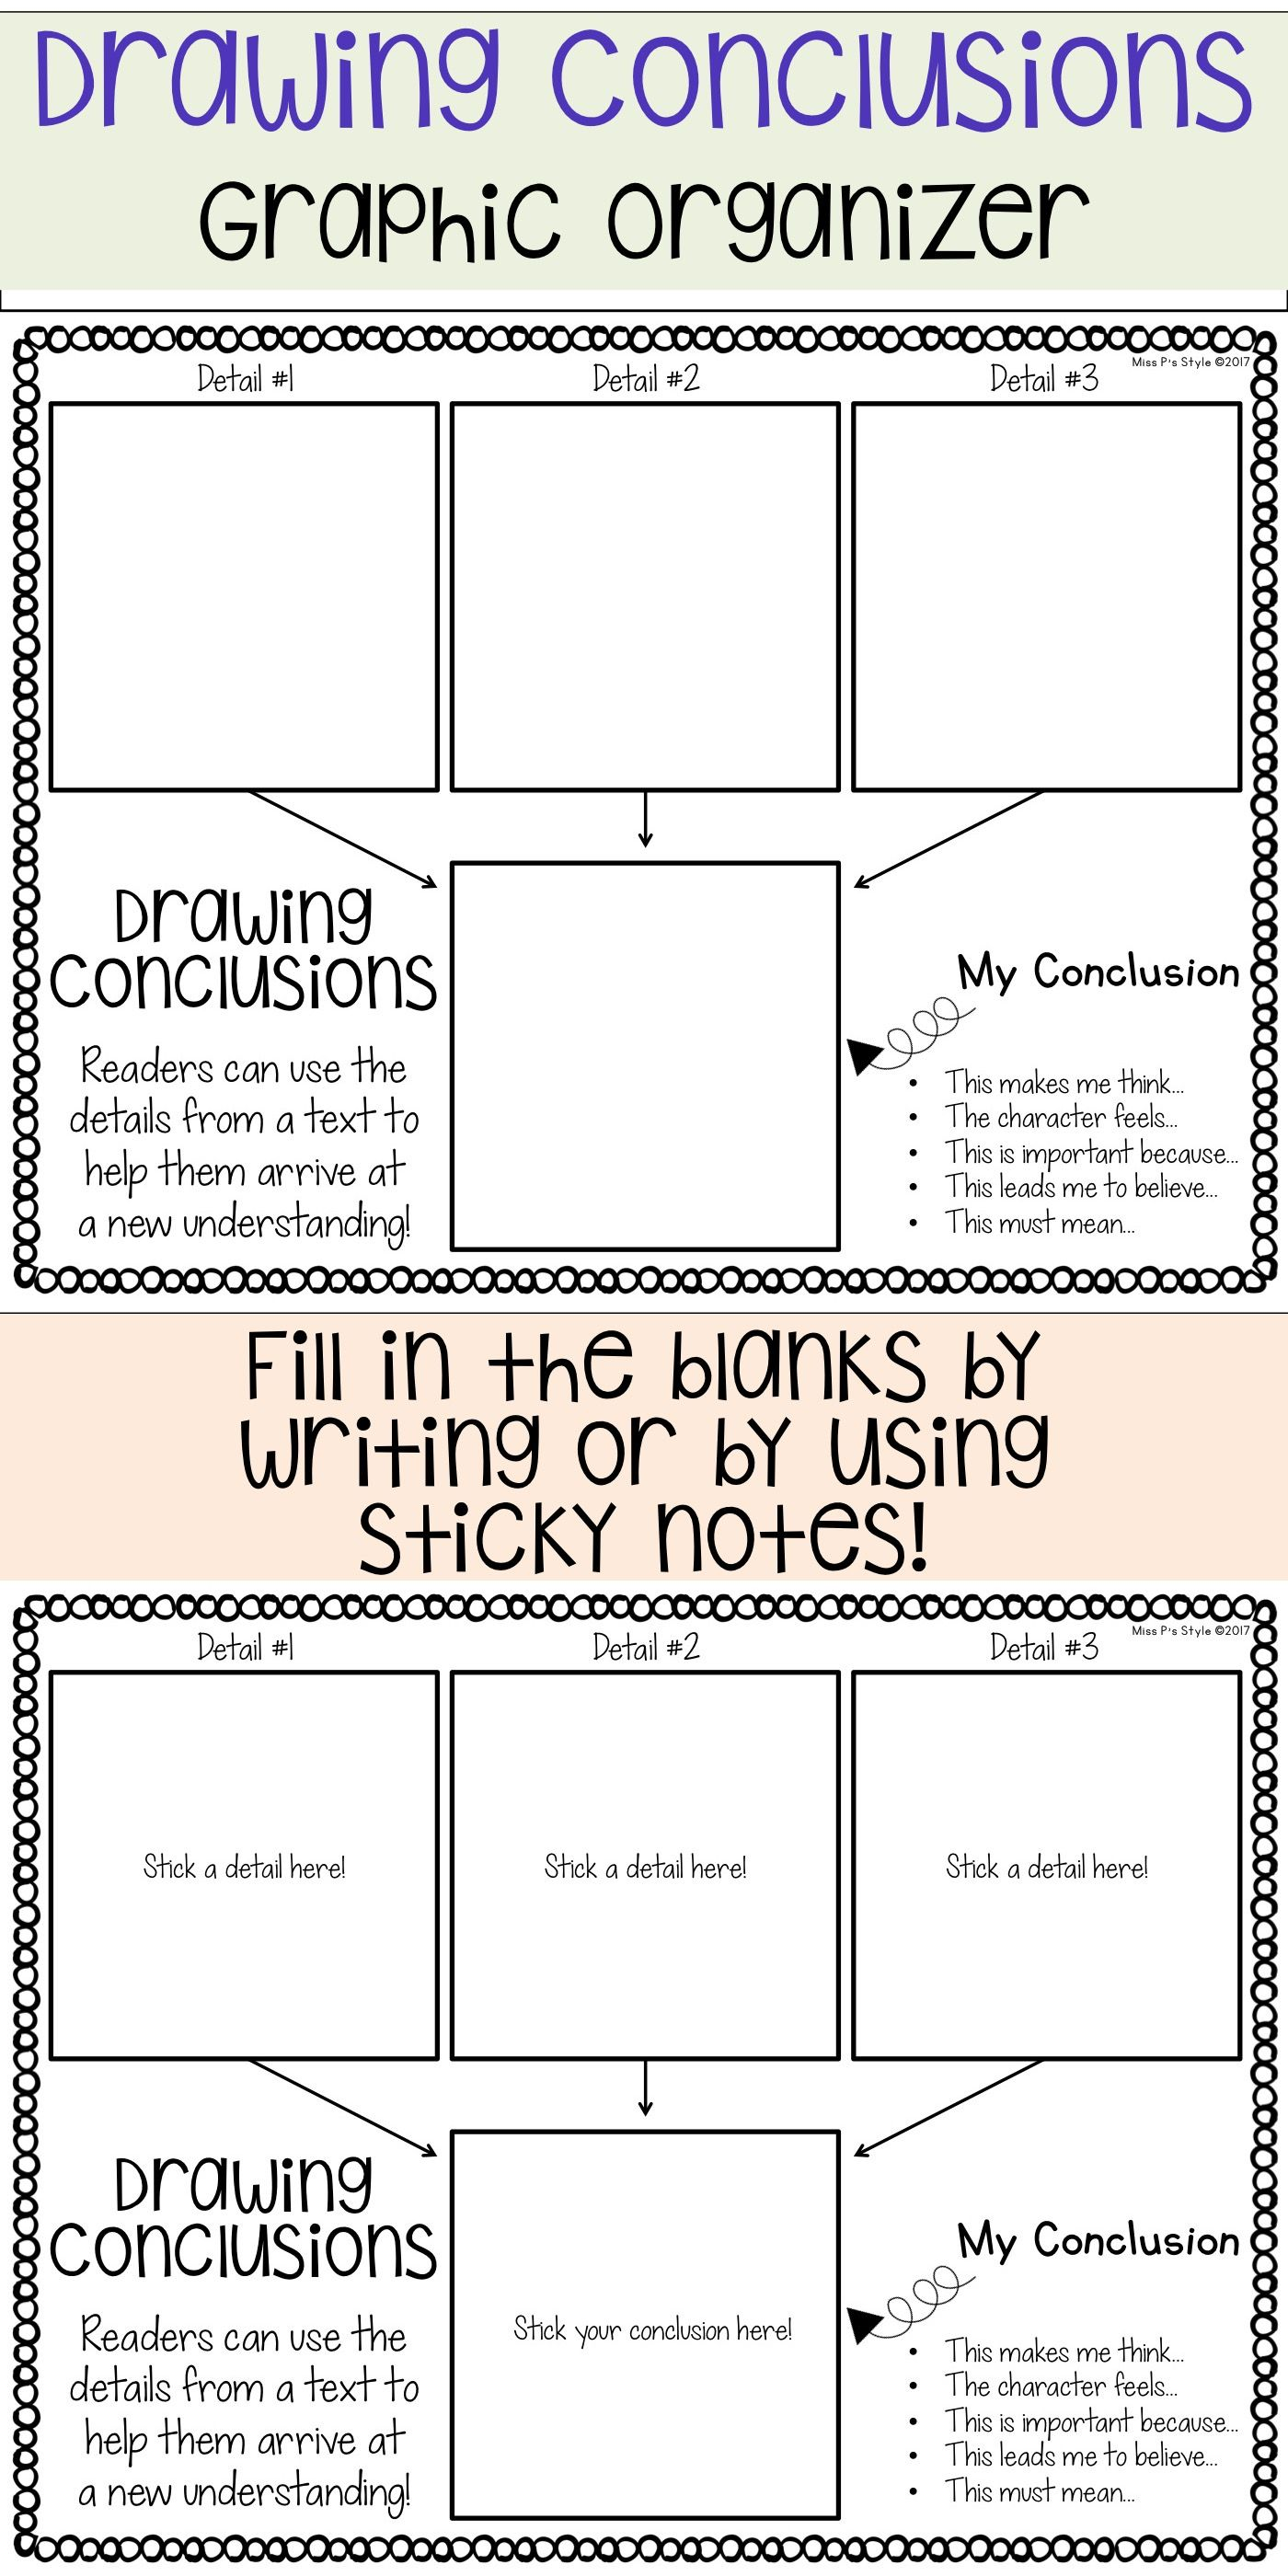 Drawing Conclusions Graphic Organizer Drawing Conclusions Reading Graphic Organizers Graphic Organizers Read write draw printables